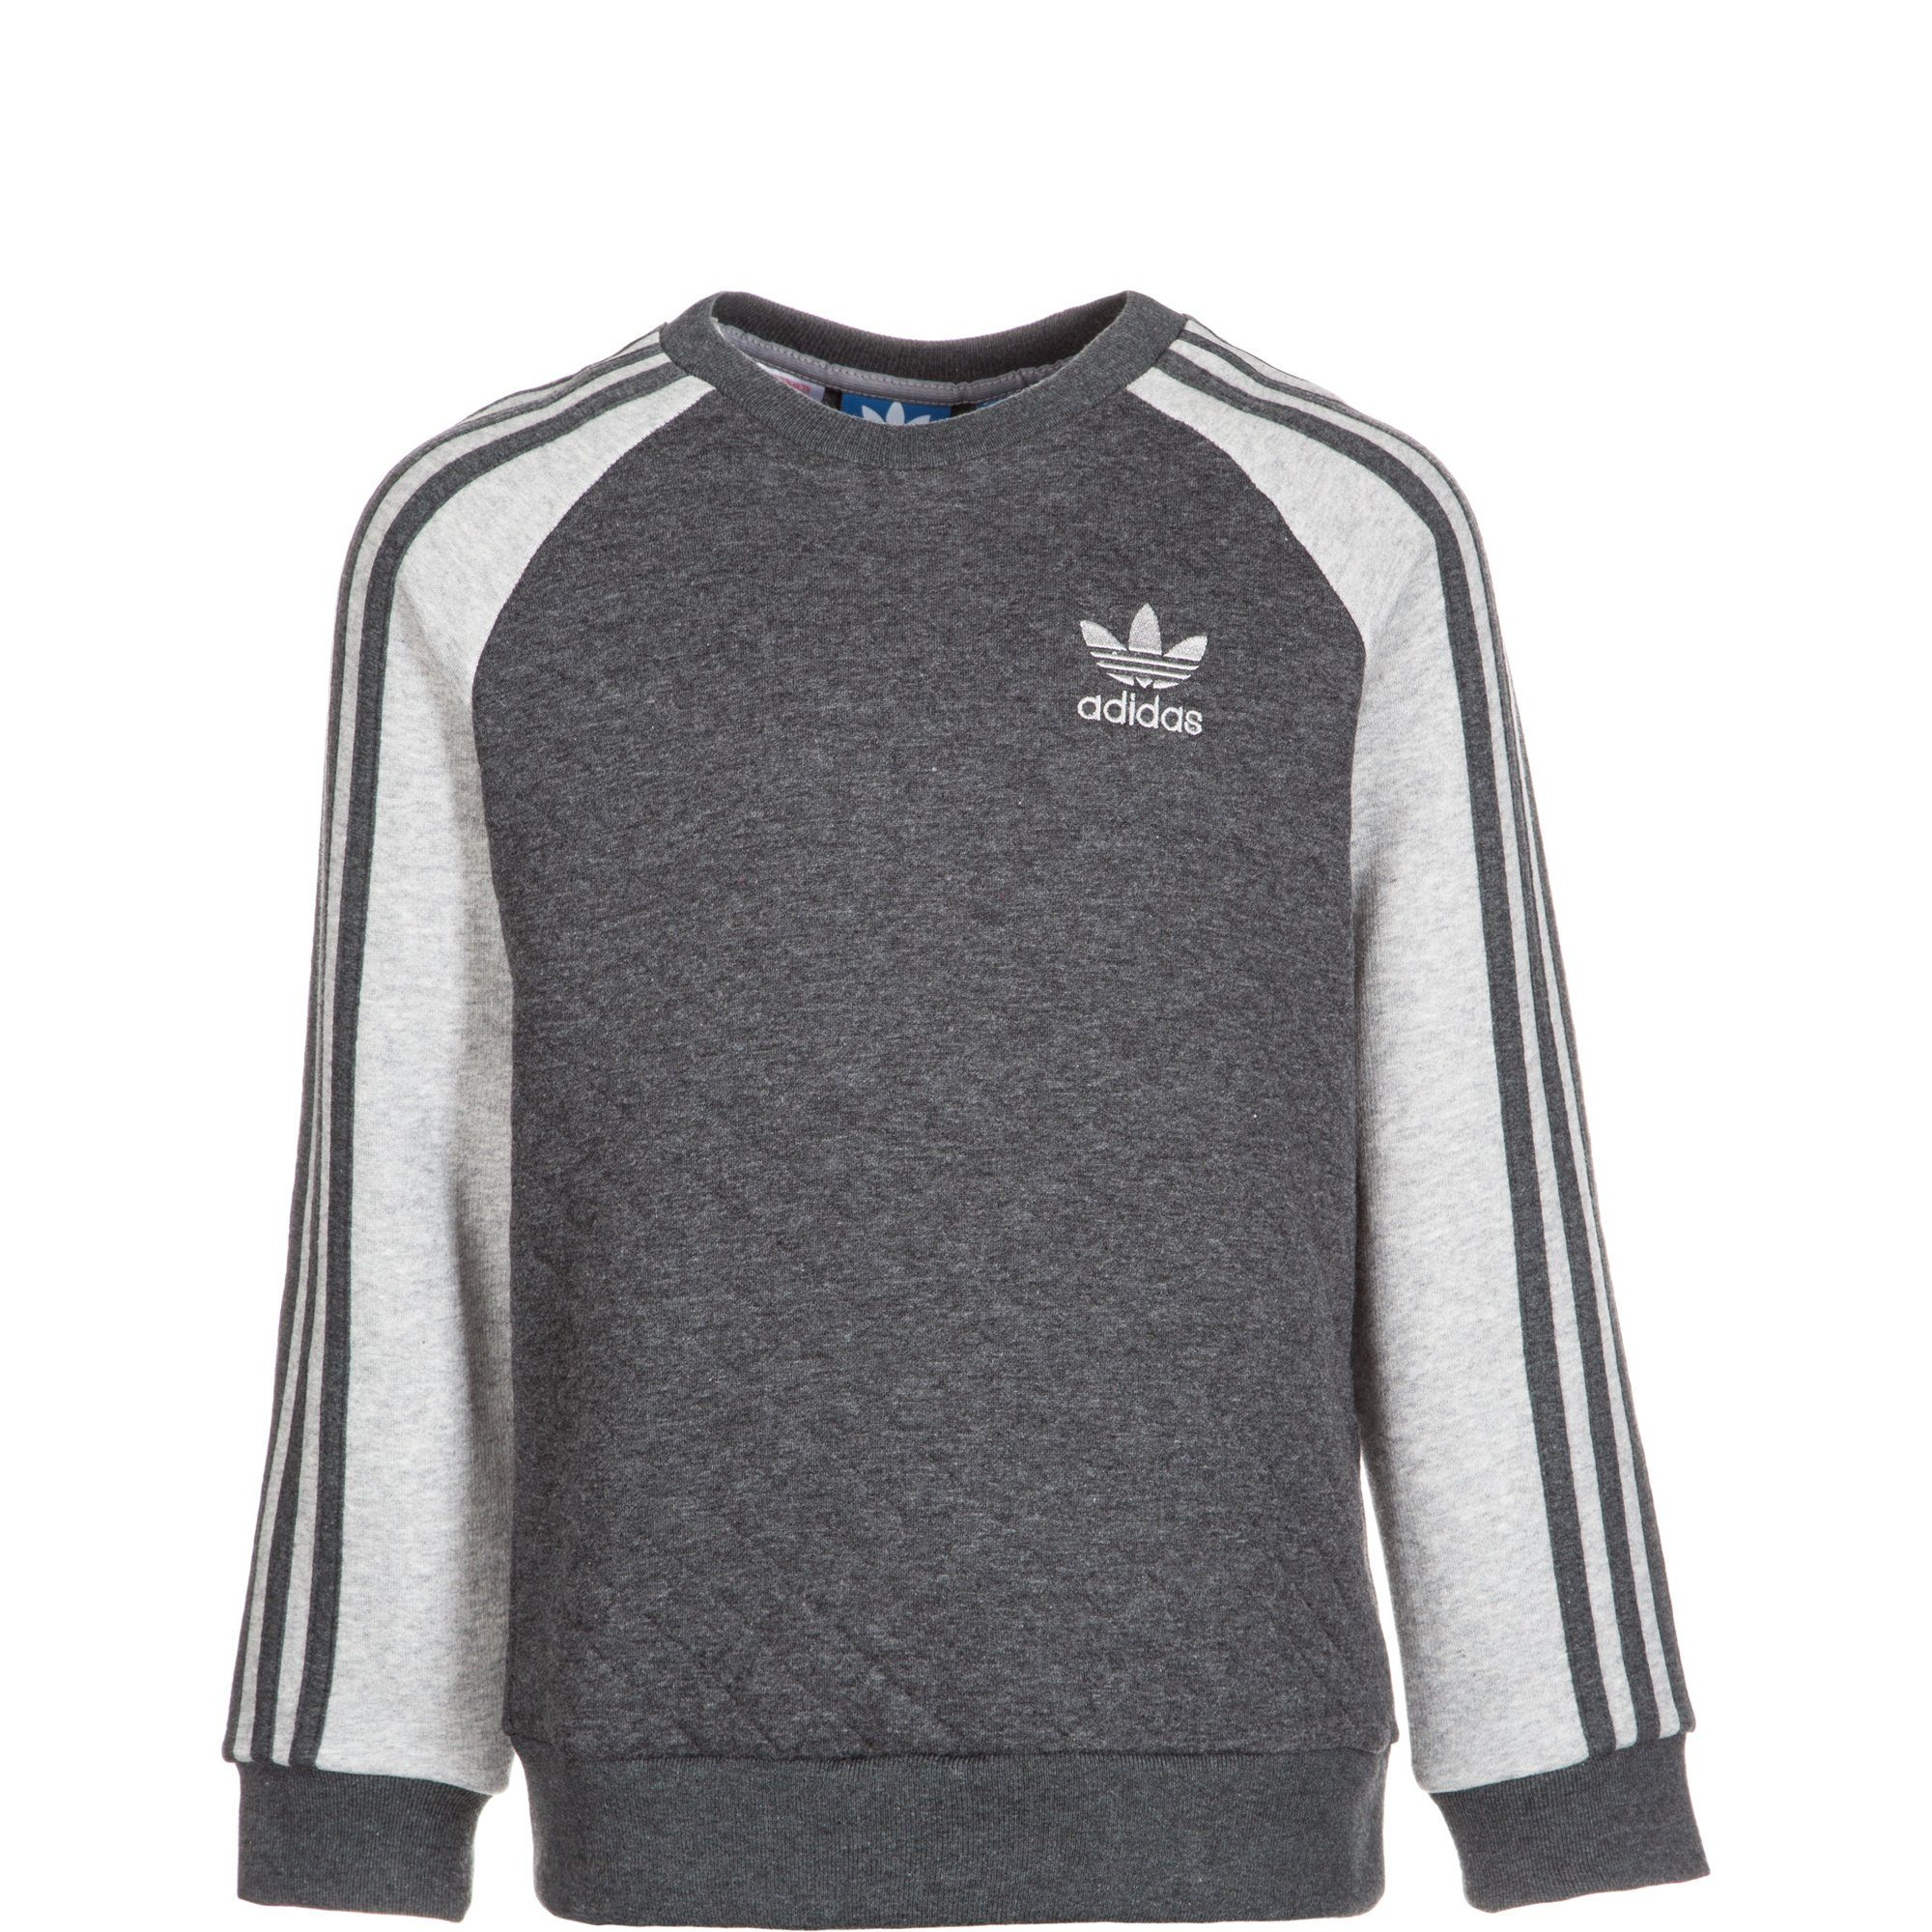 adidas Originals Fleece Crew Sweatshirt Kinder